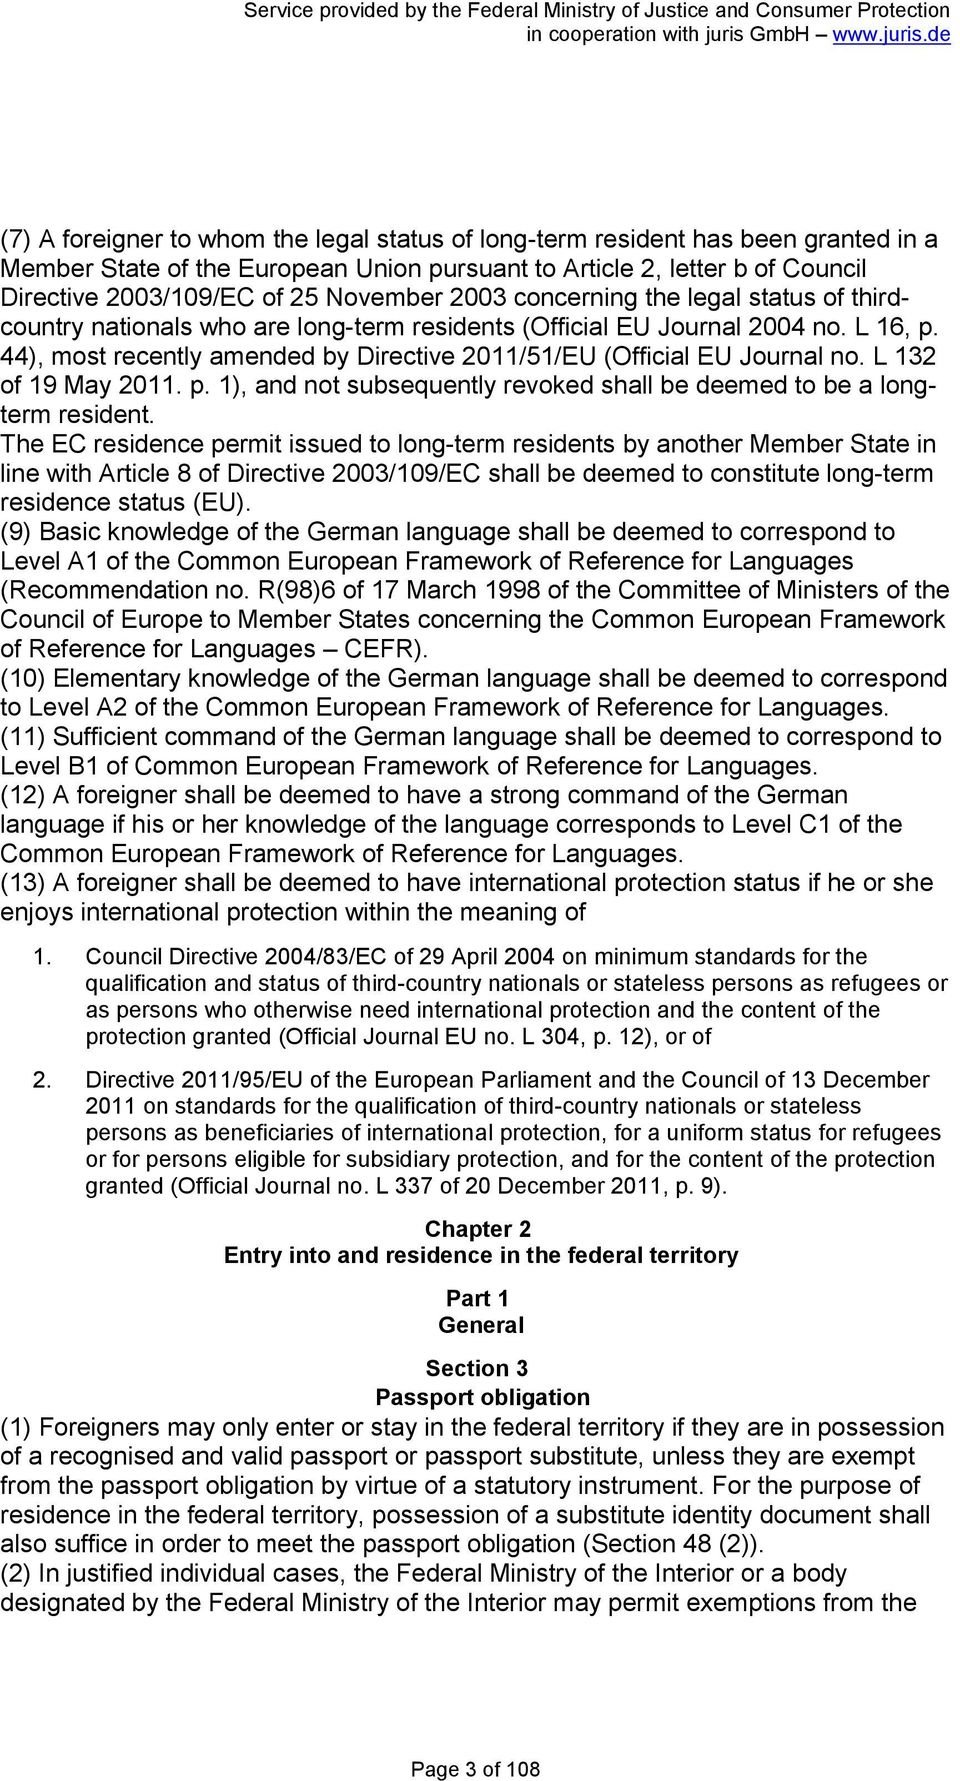 44), most recently amended by Directive 2011/51/EU (Official EU Journal no. L 132 of 19 May 2011. p. 1), and not subsequently revoked shall be deemed to be a longterm resident.